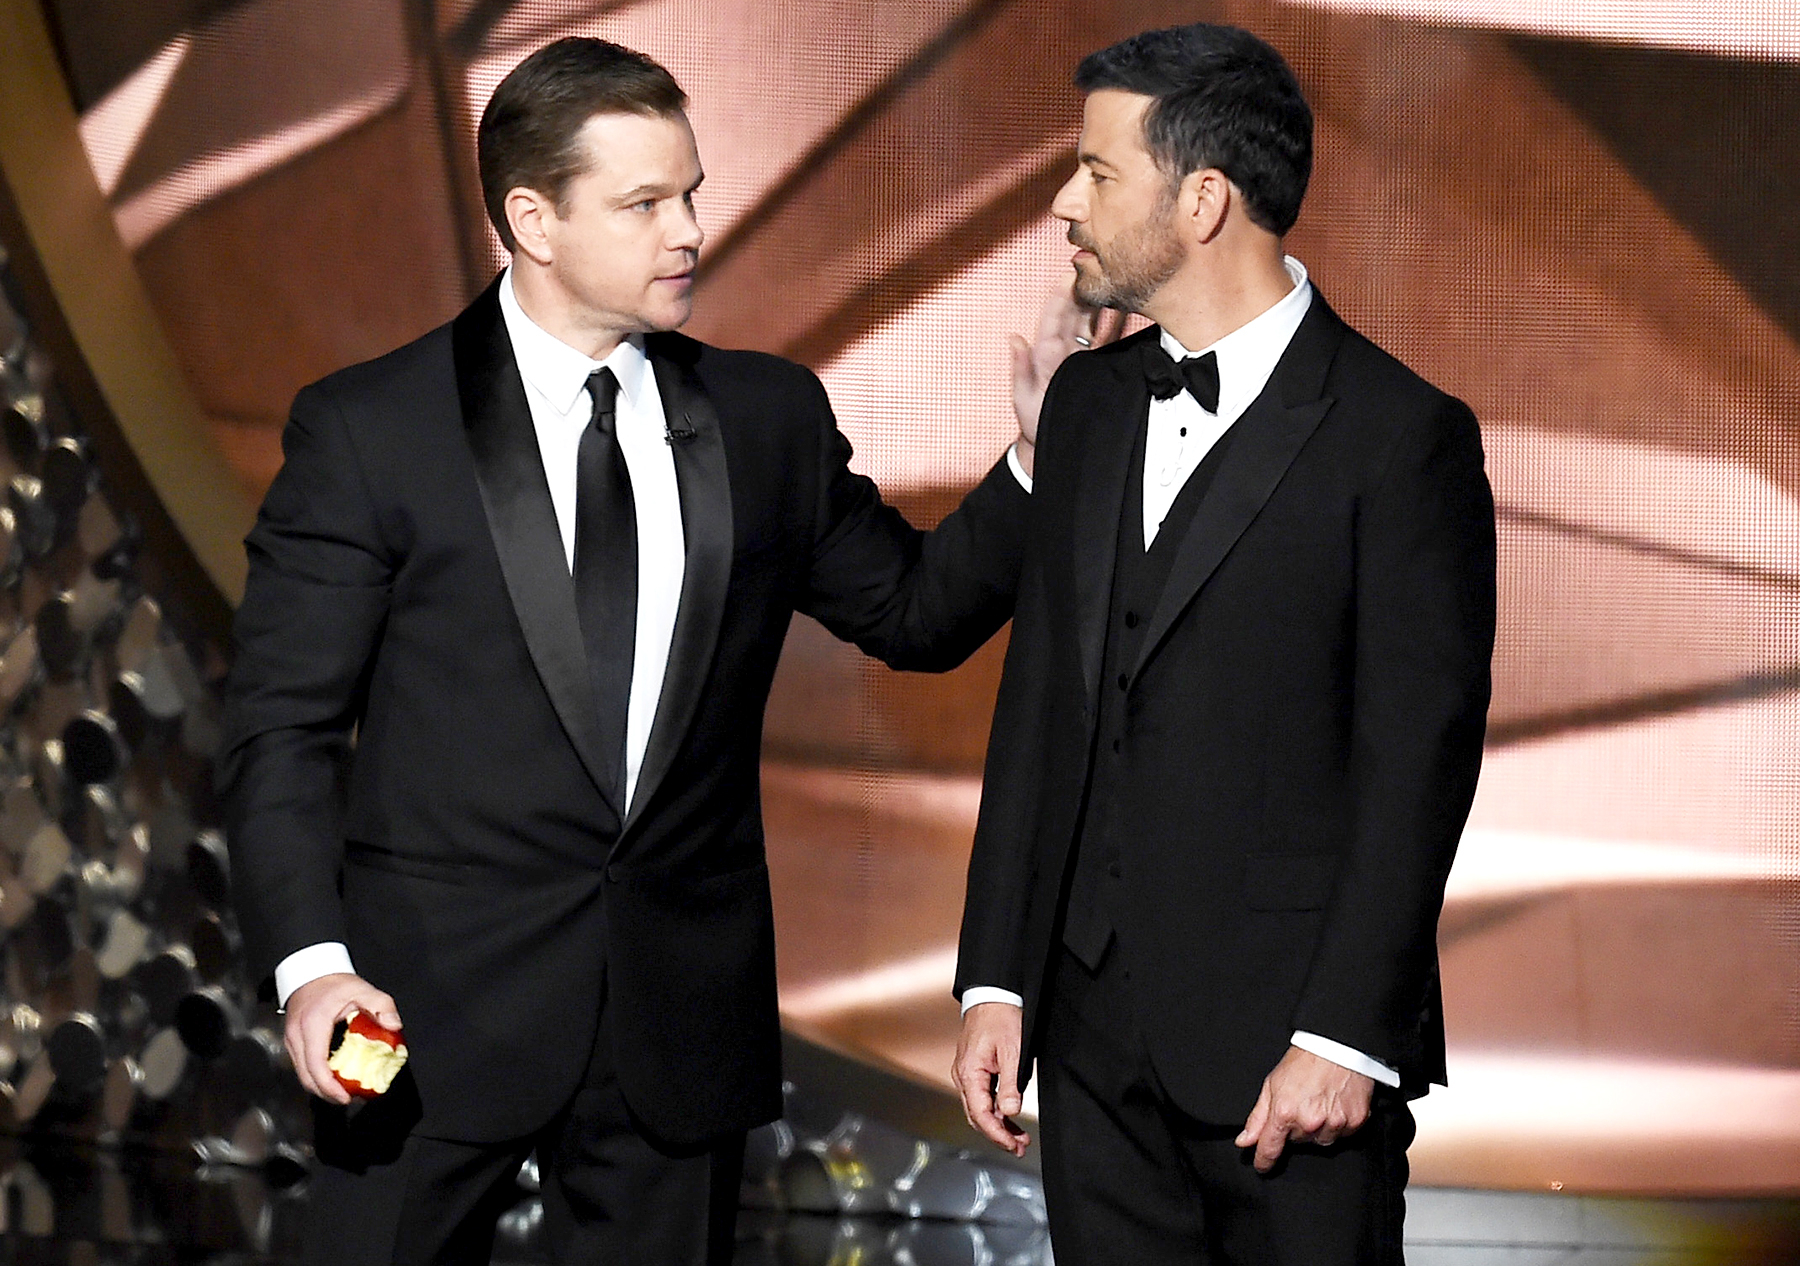 Matt Damon (L) and host Jimmy Kimmel speak onstage during the 68th Annual Primetime Emmy Awards at Microsoft Theater on September 18, 2016 in Los Angeles, California.